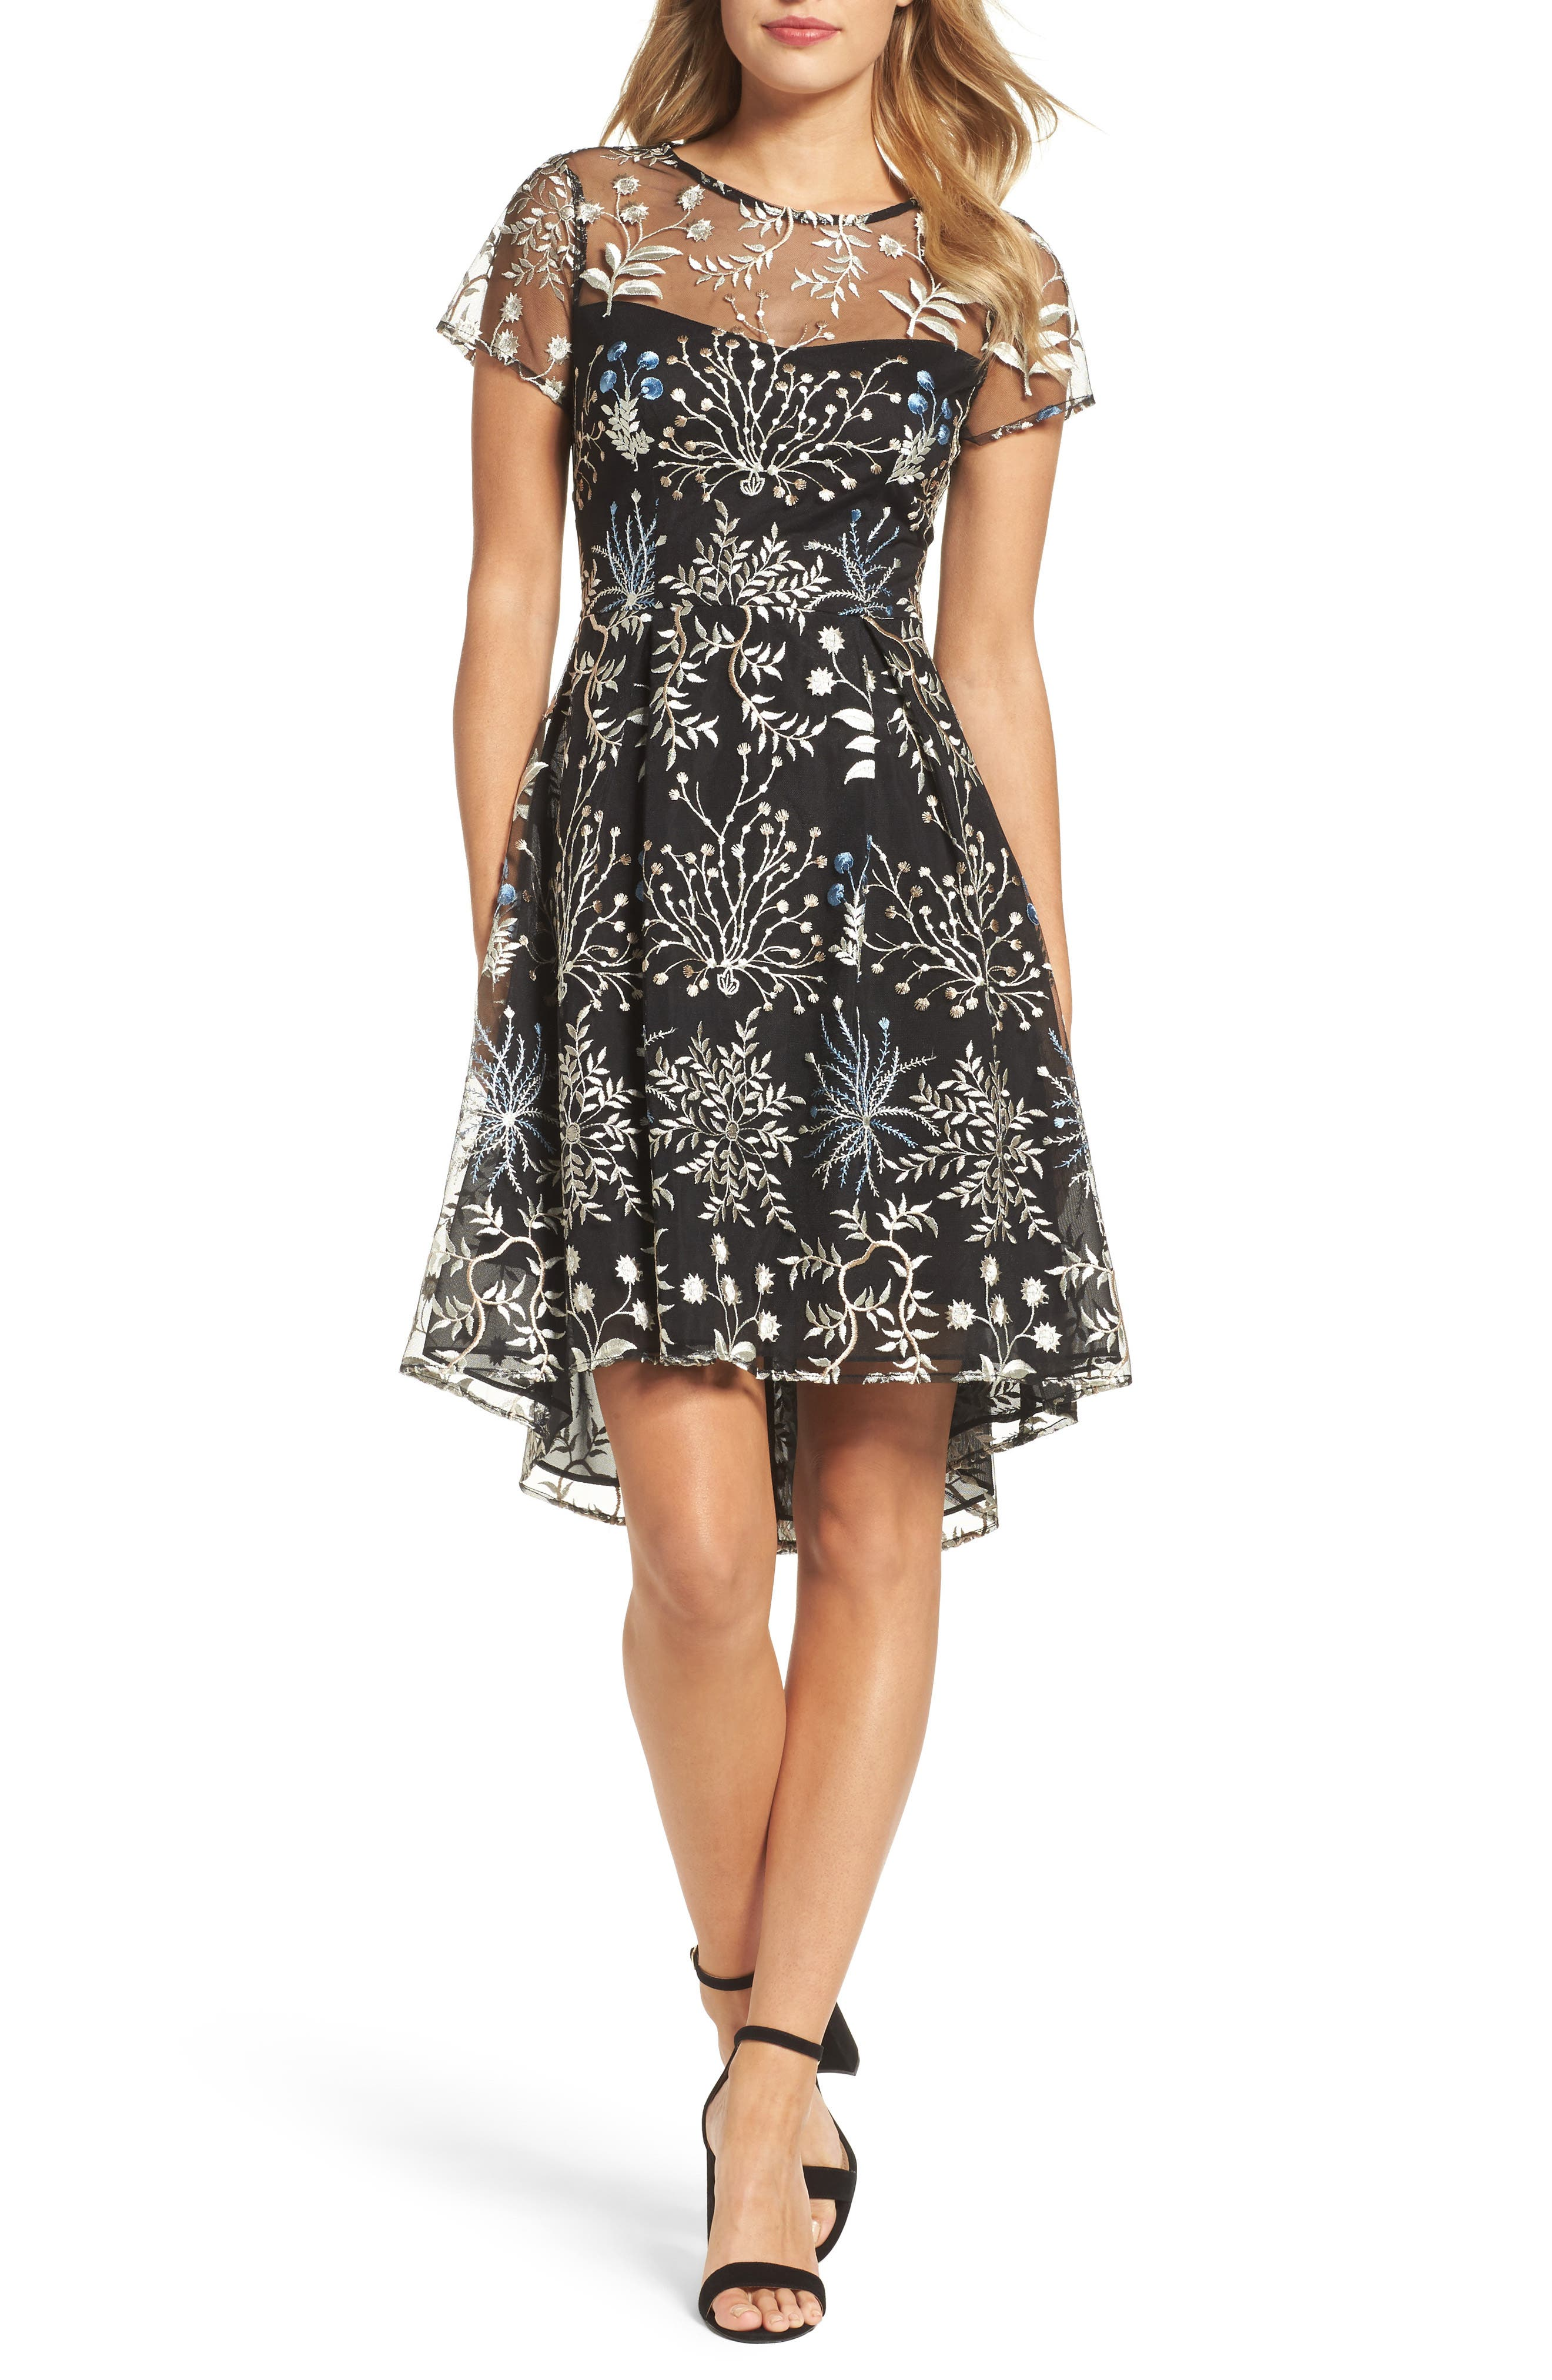 Adrianna Papell Ethereal Fit & Flare Dress